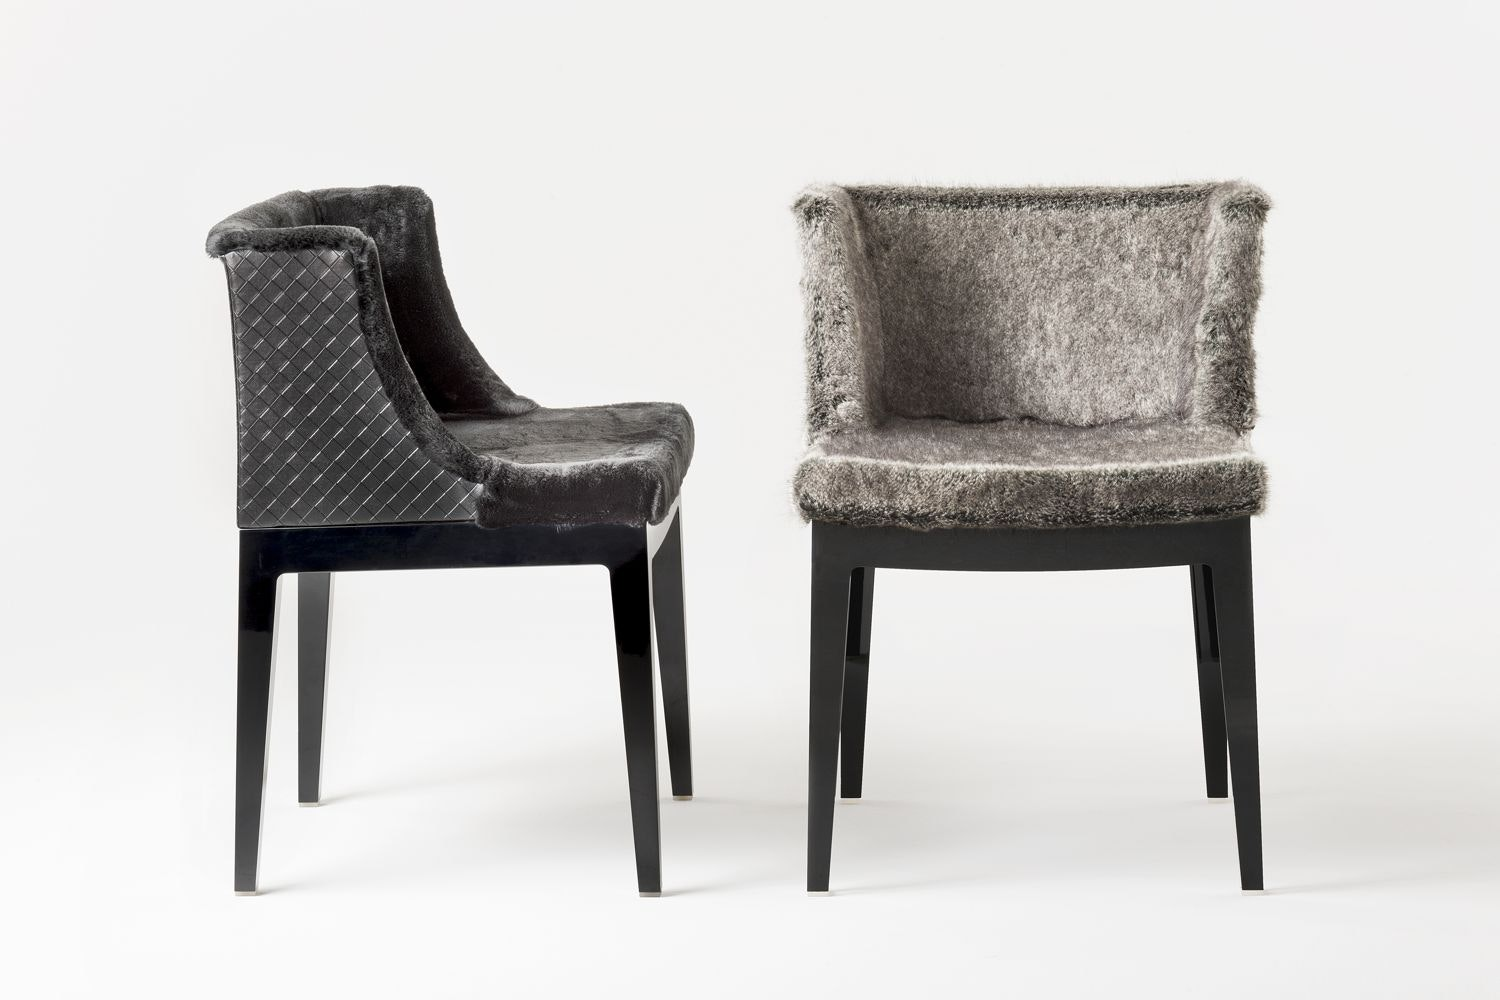 Mademoiselle Kravitz Chair by Philippe Starck for Kartell